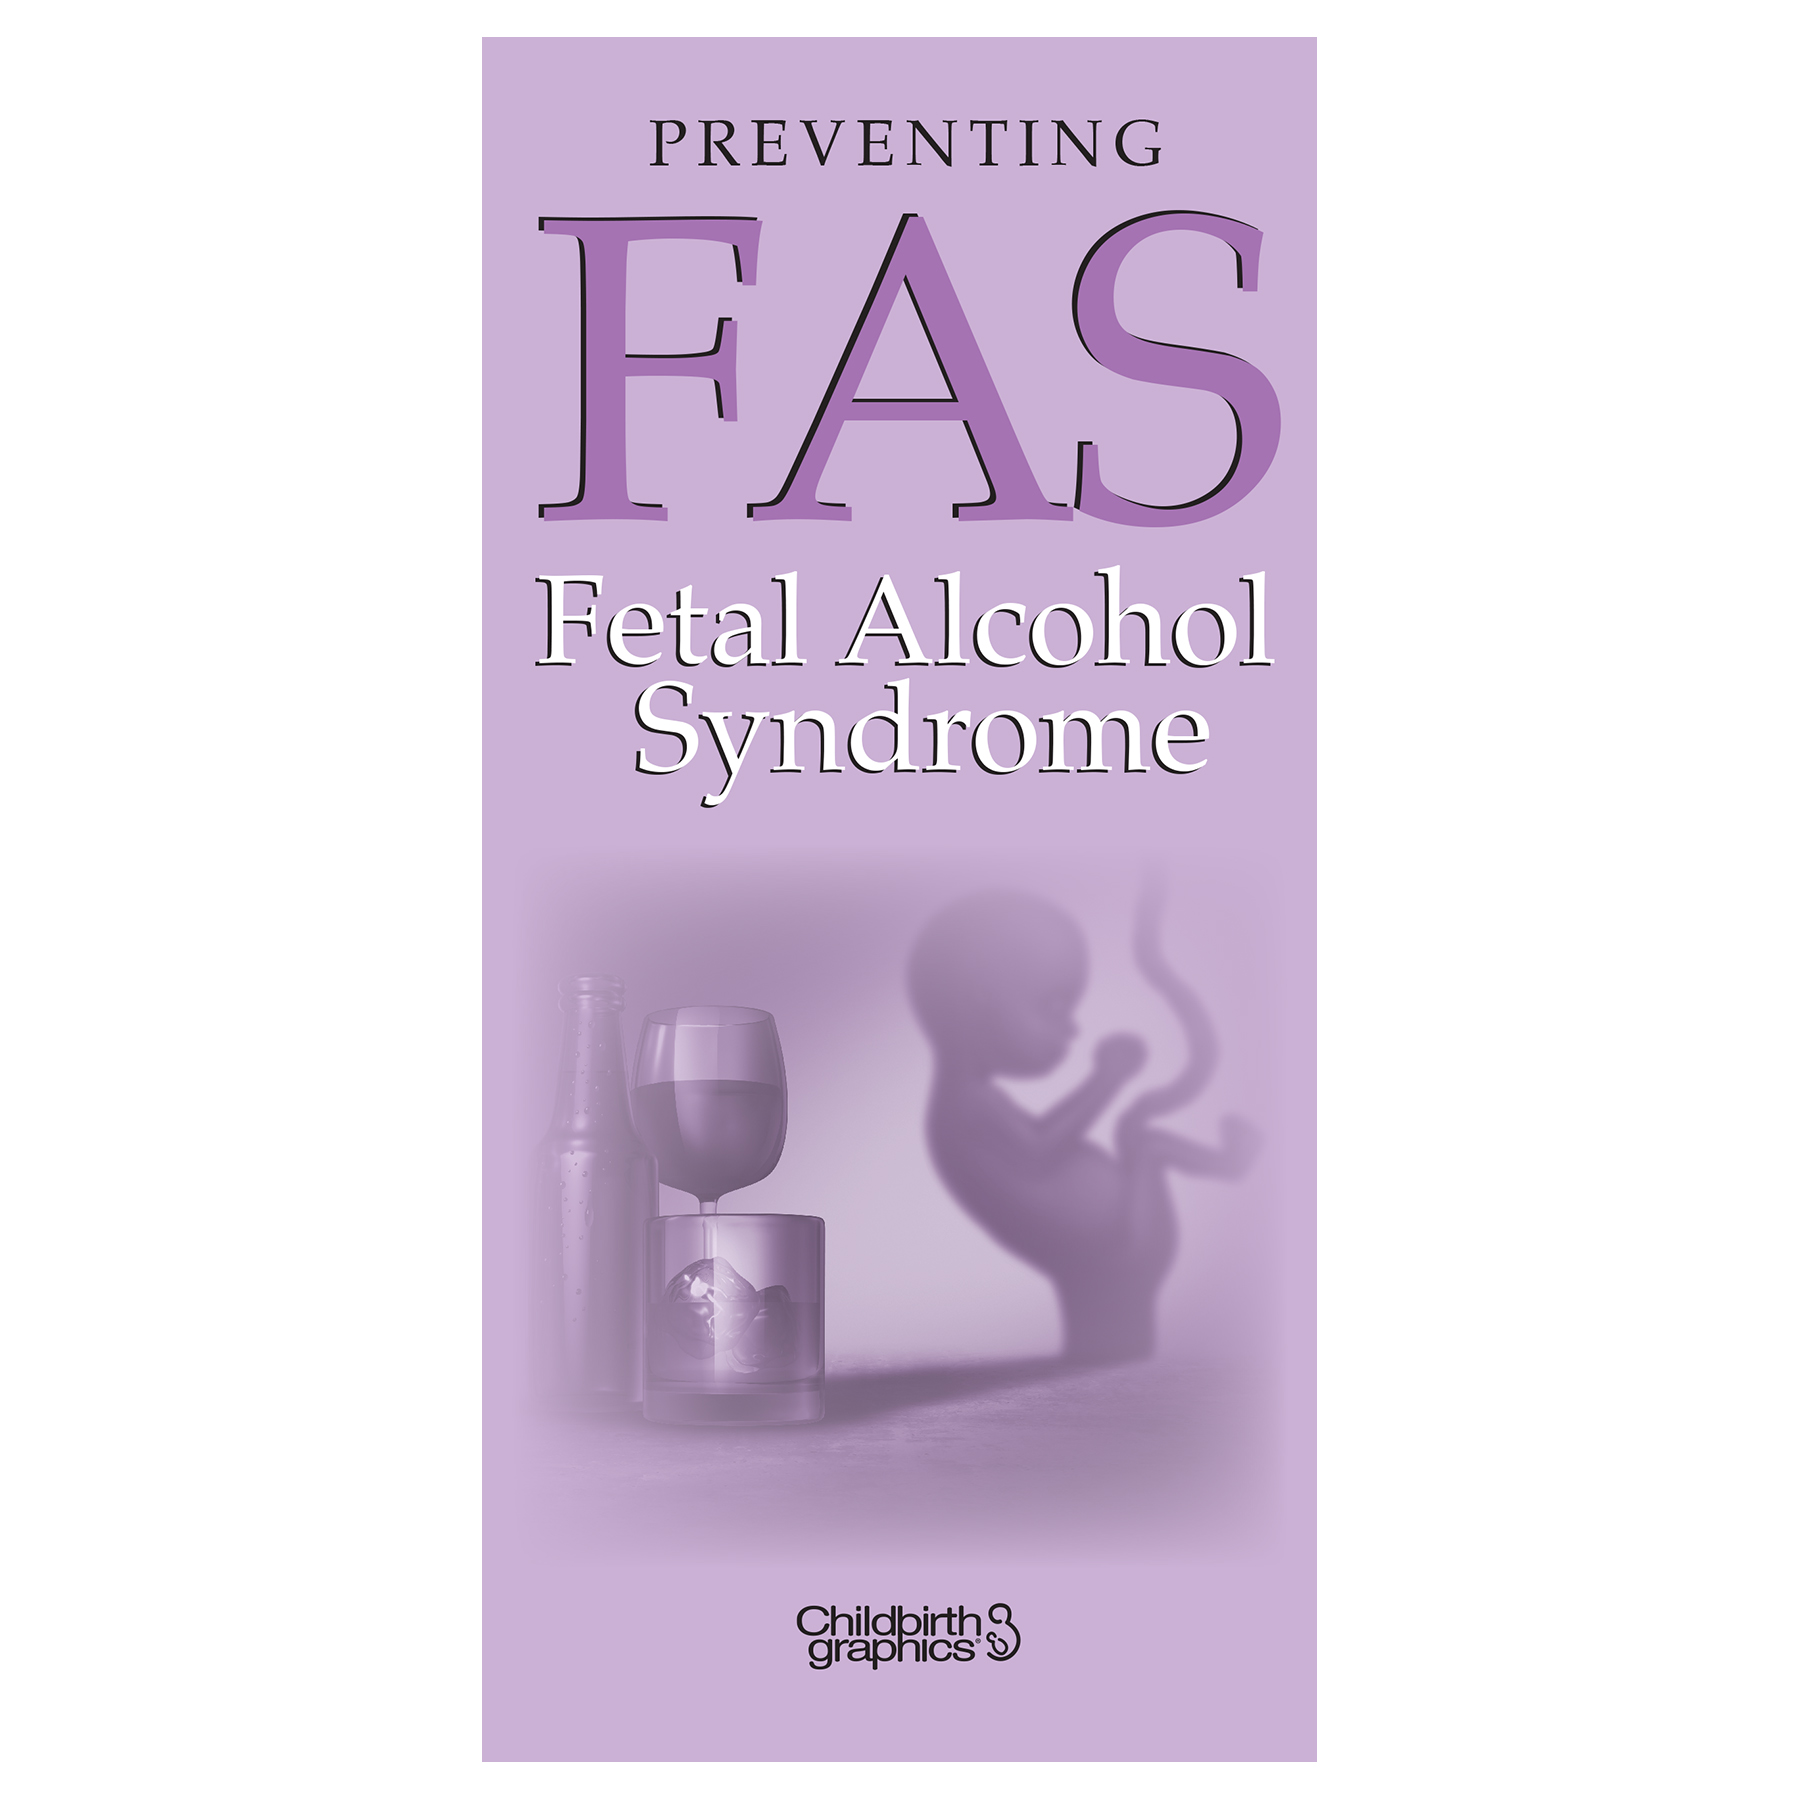 Preventing Fetal Alcohol Syndrome (FAS) 2-color illustrated pamphlet cover shown, message that no amount of alcohol is safe for mother or baby, Childbirth Graphics, 38612